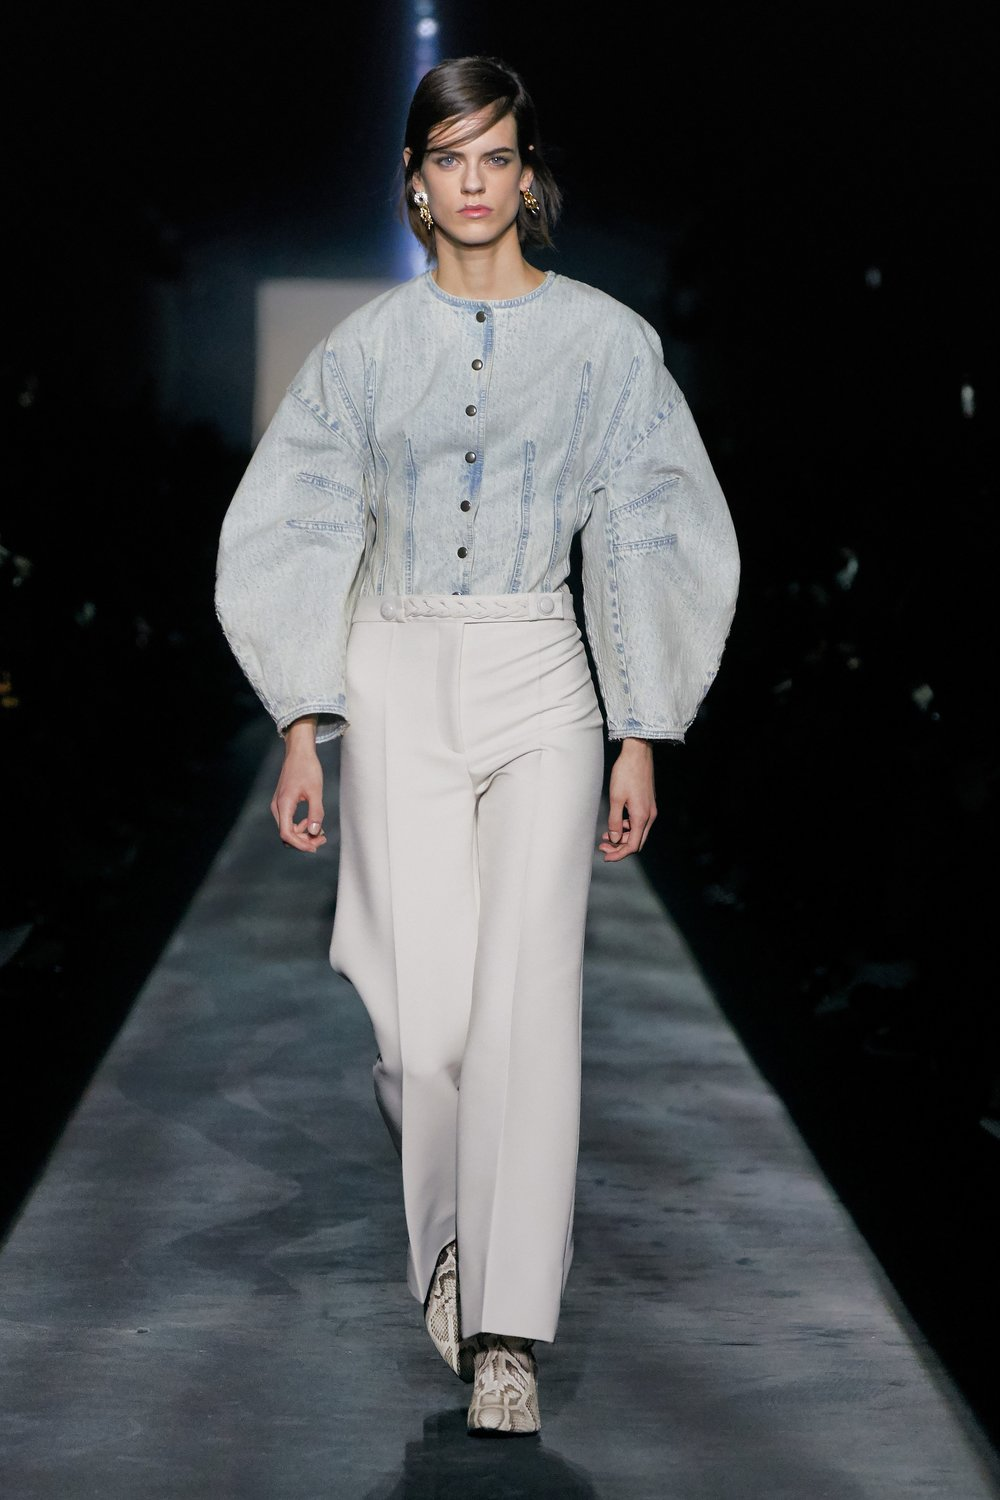 More Sleeves Please! - Oversized, flared, mutton and more - Givenchy